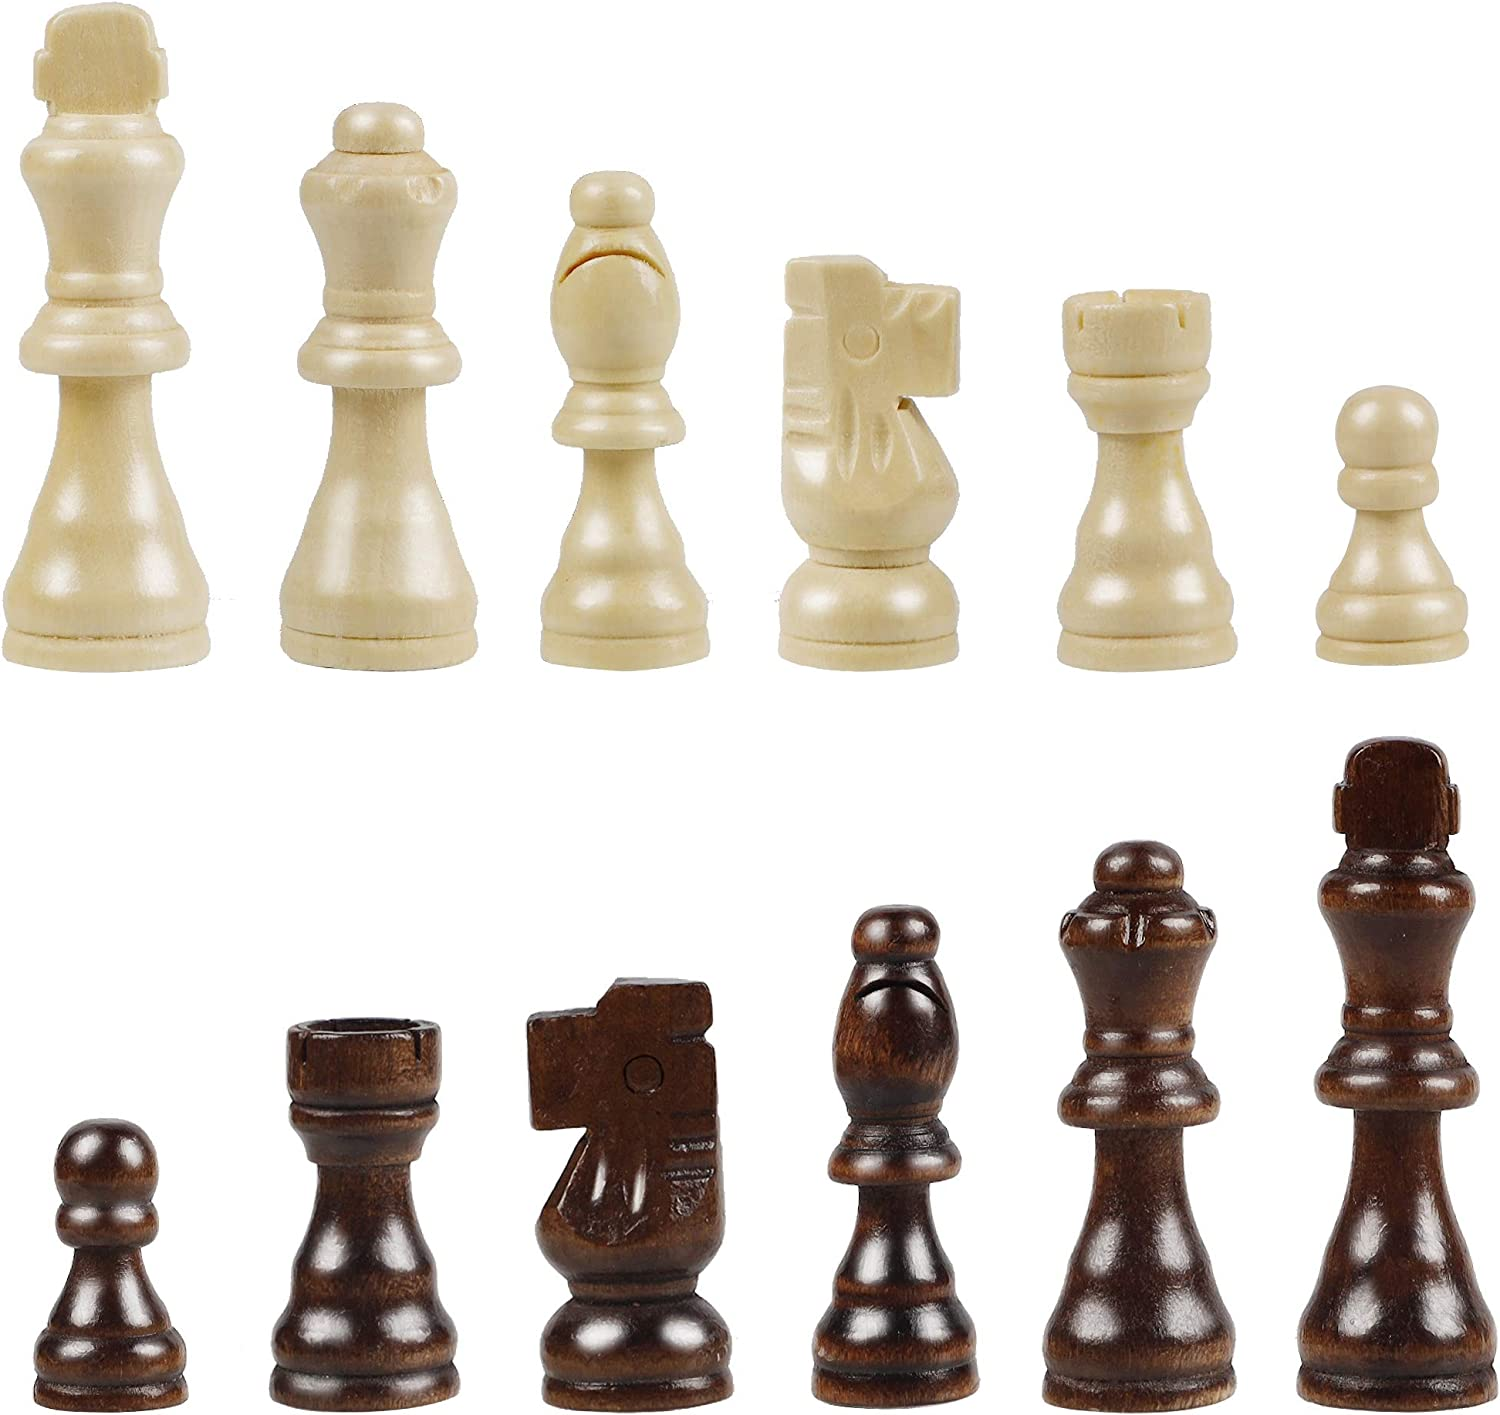 Juegoal Wooden Chess Pieces Only, 32 Pieces Wood Chessmen Pieces, 3 Inch King Figures Chess Game Pawns Figurine Pieces, Replacement of Missing Piece, Includes Storage Bag